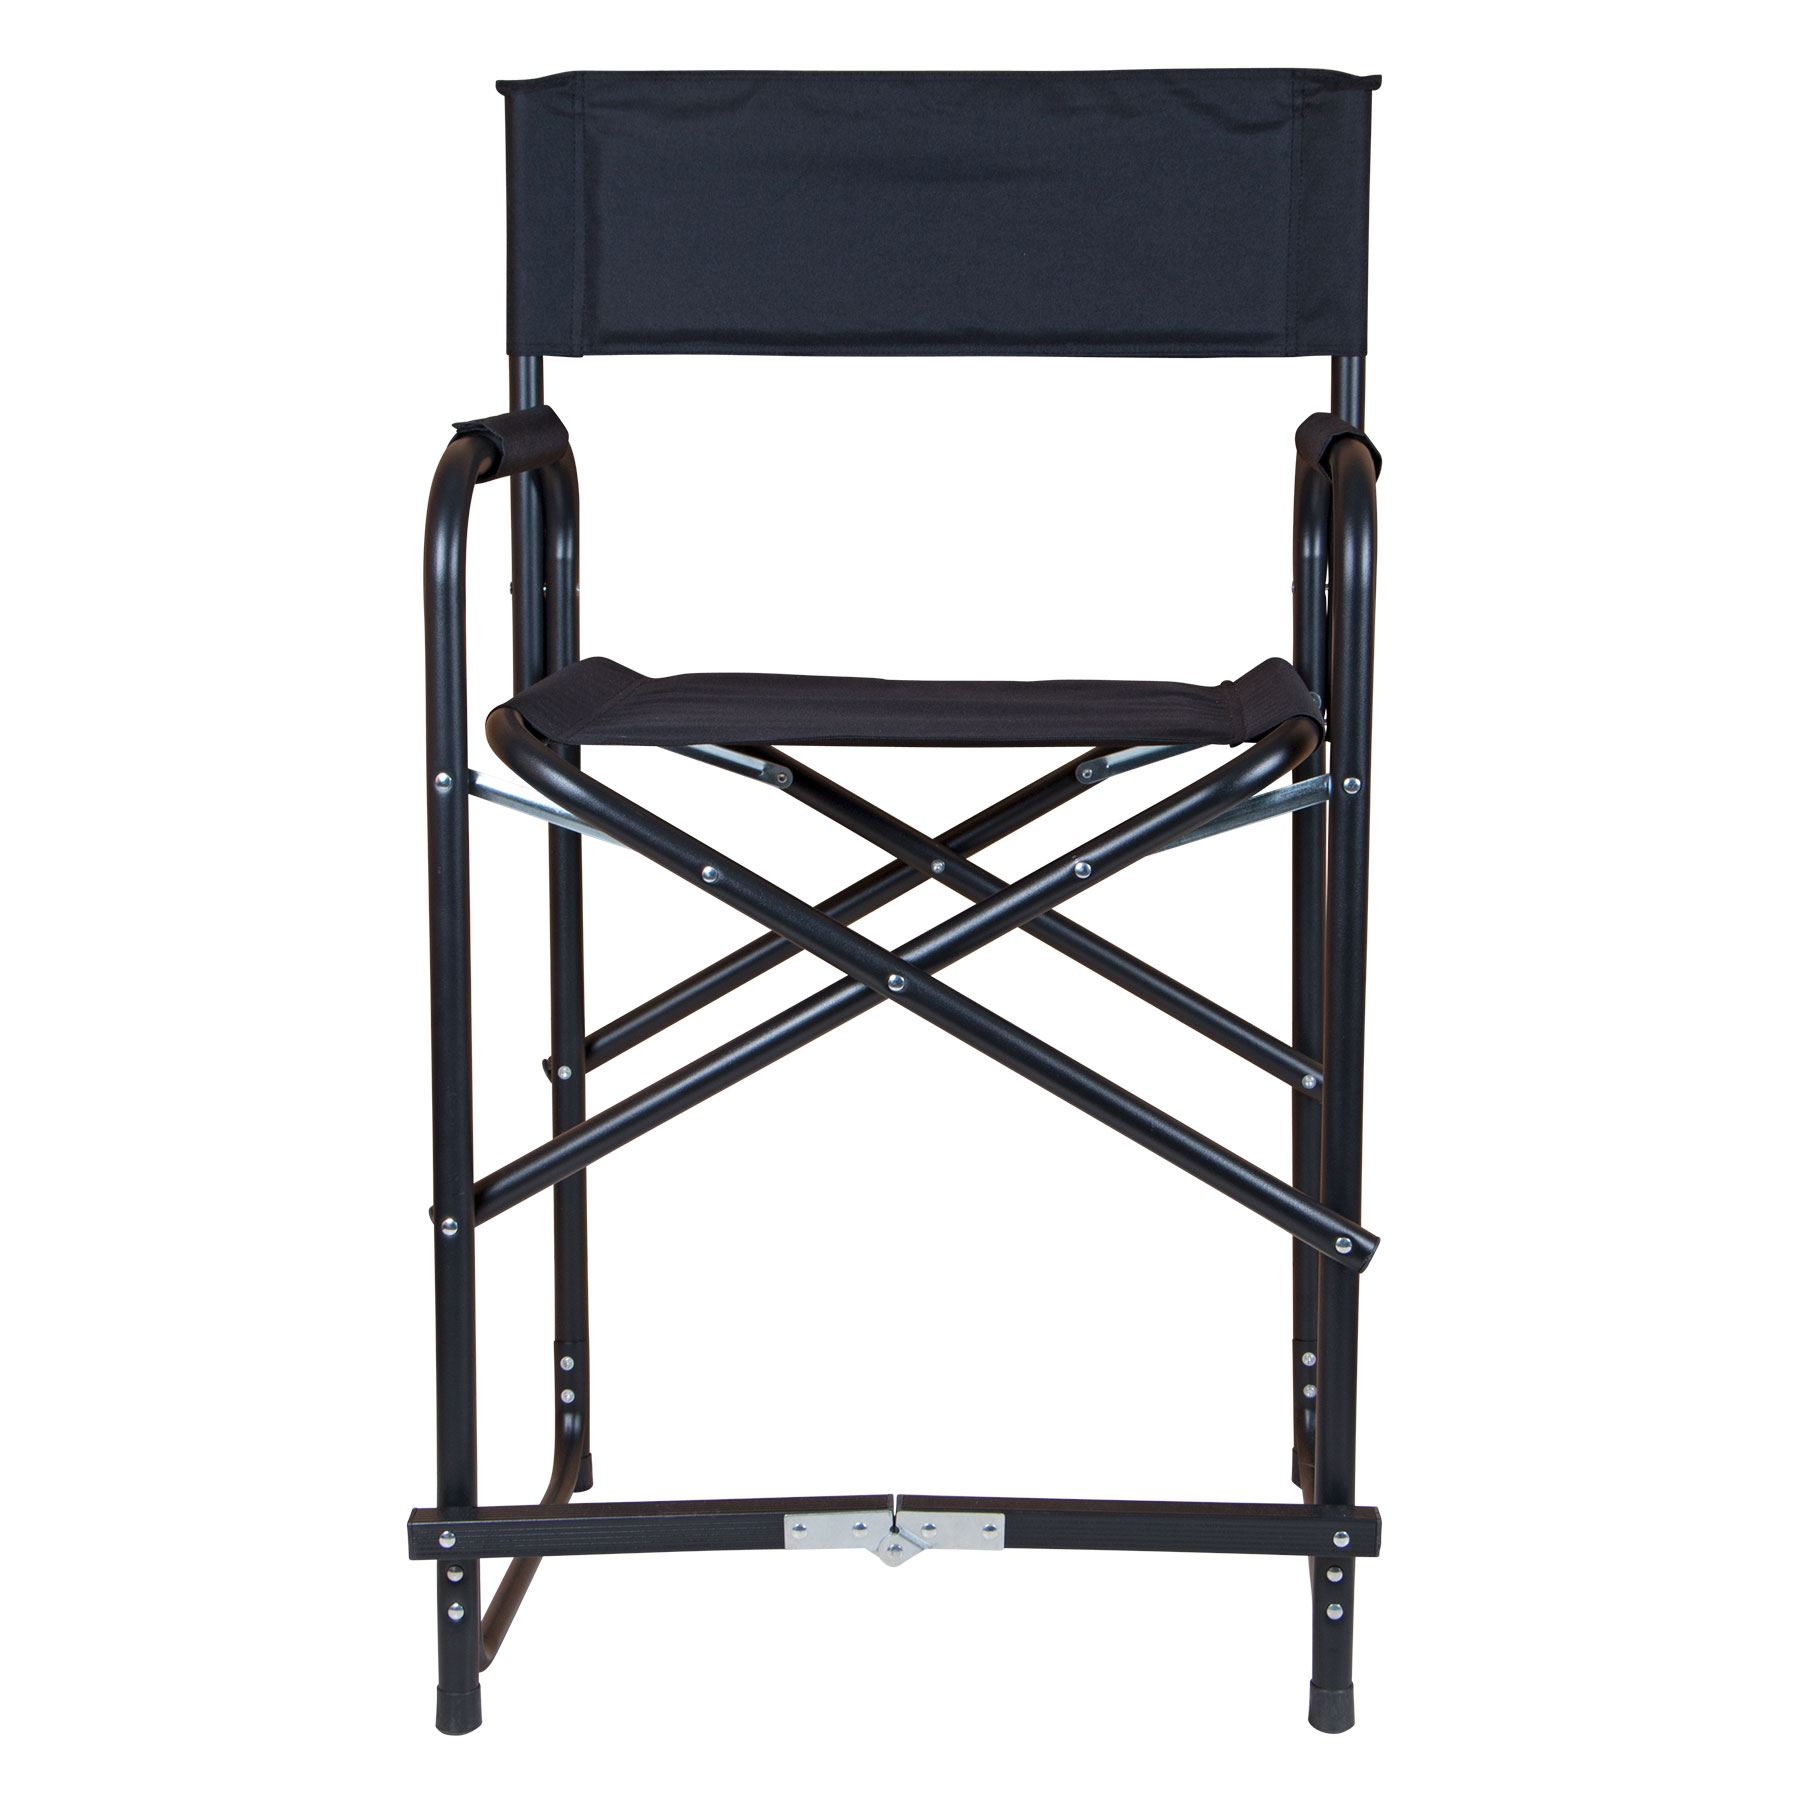 tall director chair covers sizes dura tech folding s in stable at schneider saddlery